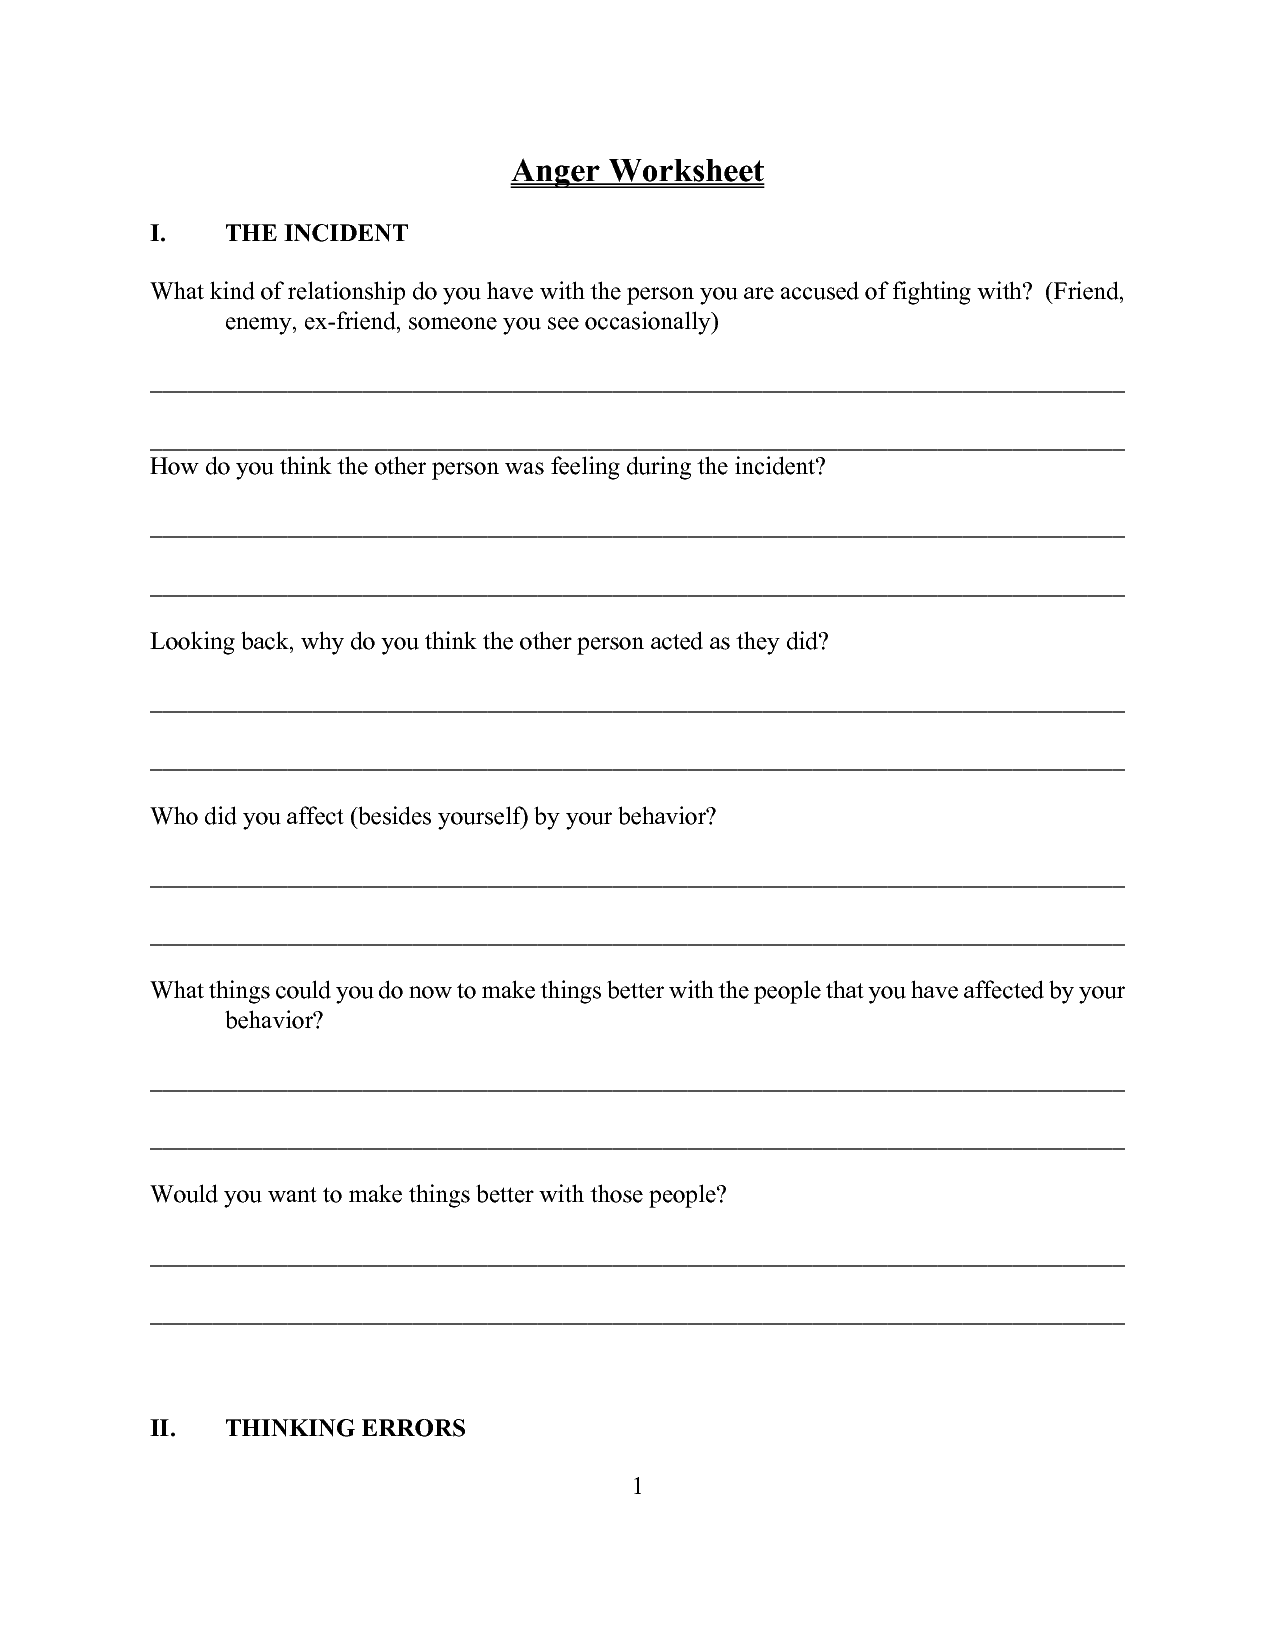 worksheet Free Anger Management Worksheets a simple z on speedy products in anger management worksheets worksheets